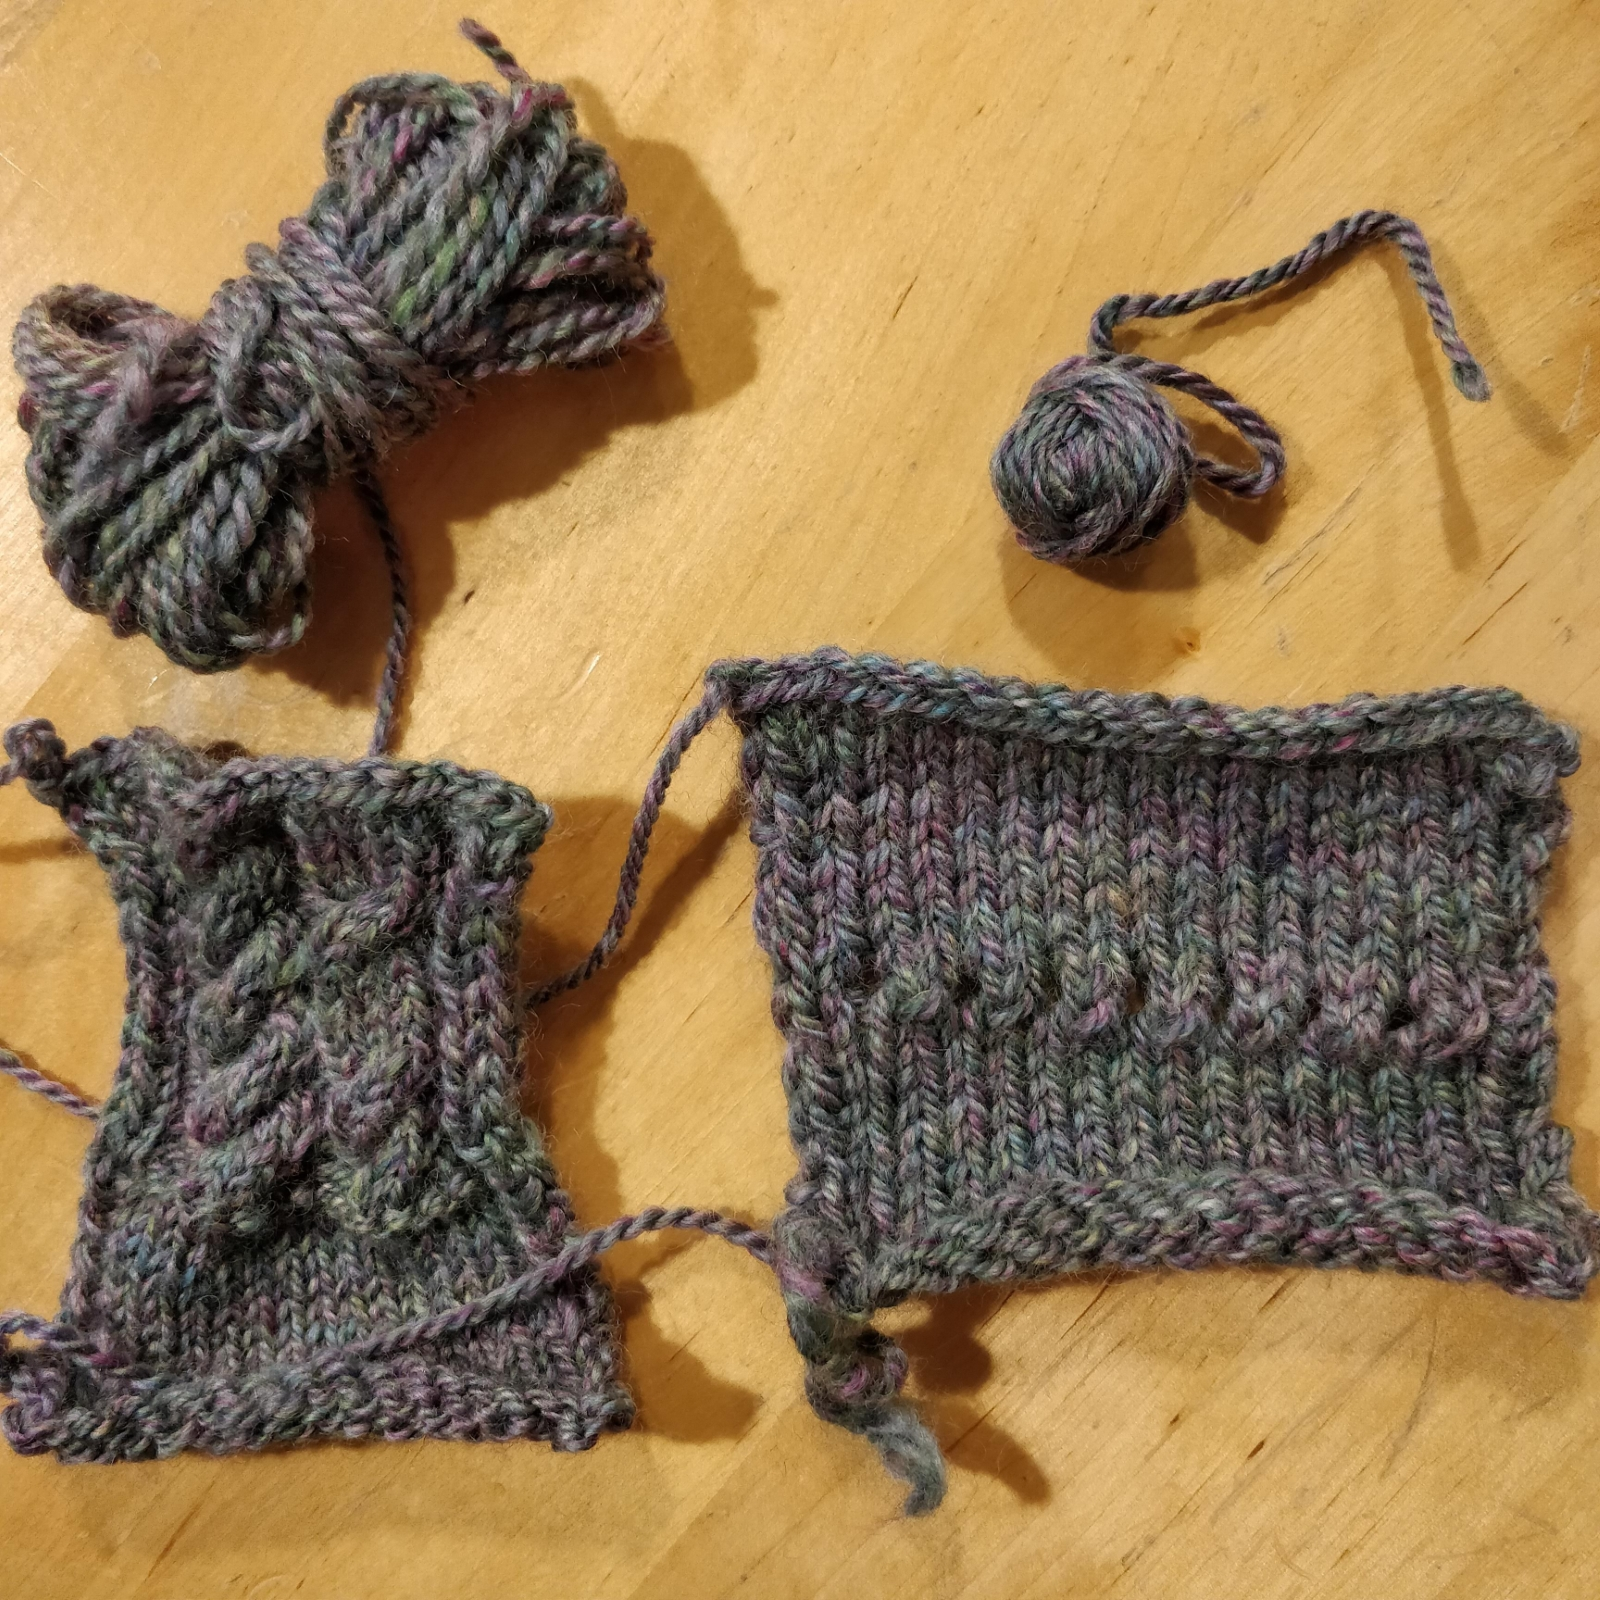 Knit samples and leftover bits of yarn.